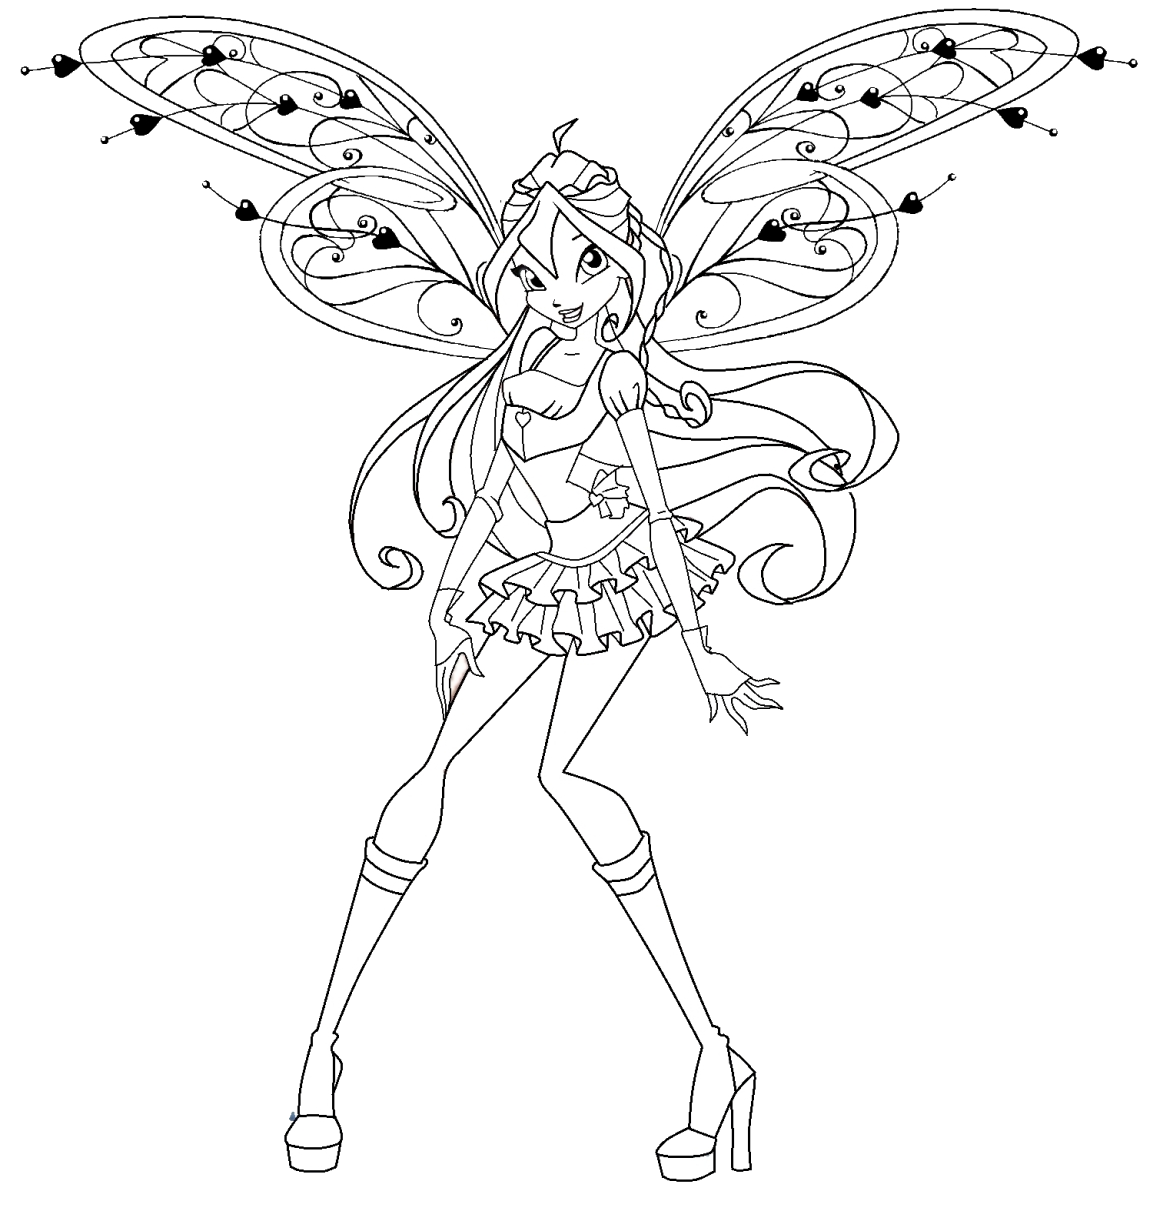 winx club colouring pages believix stella believix by elfkena on deviantart colouring club winx believix pages